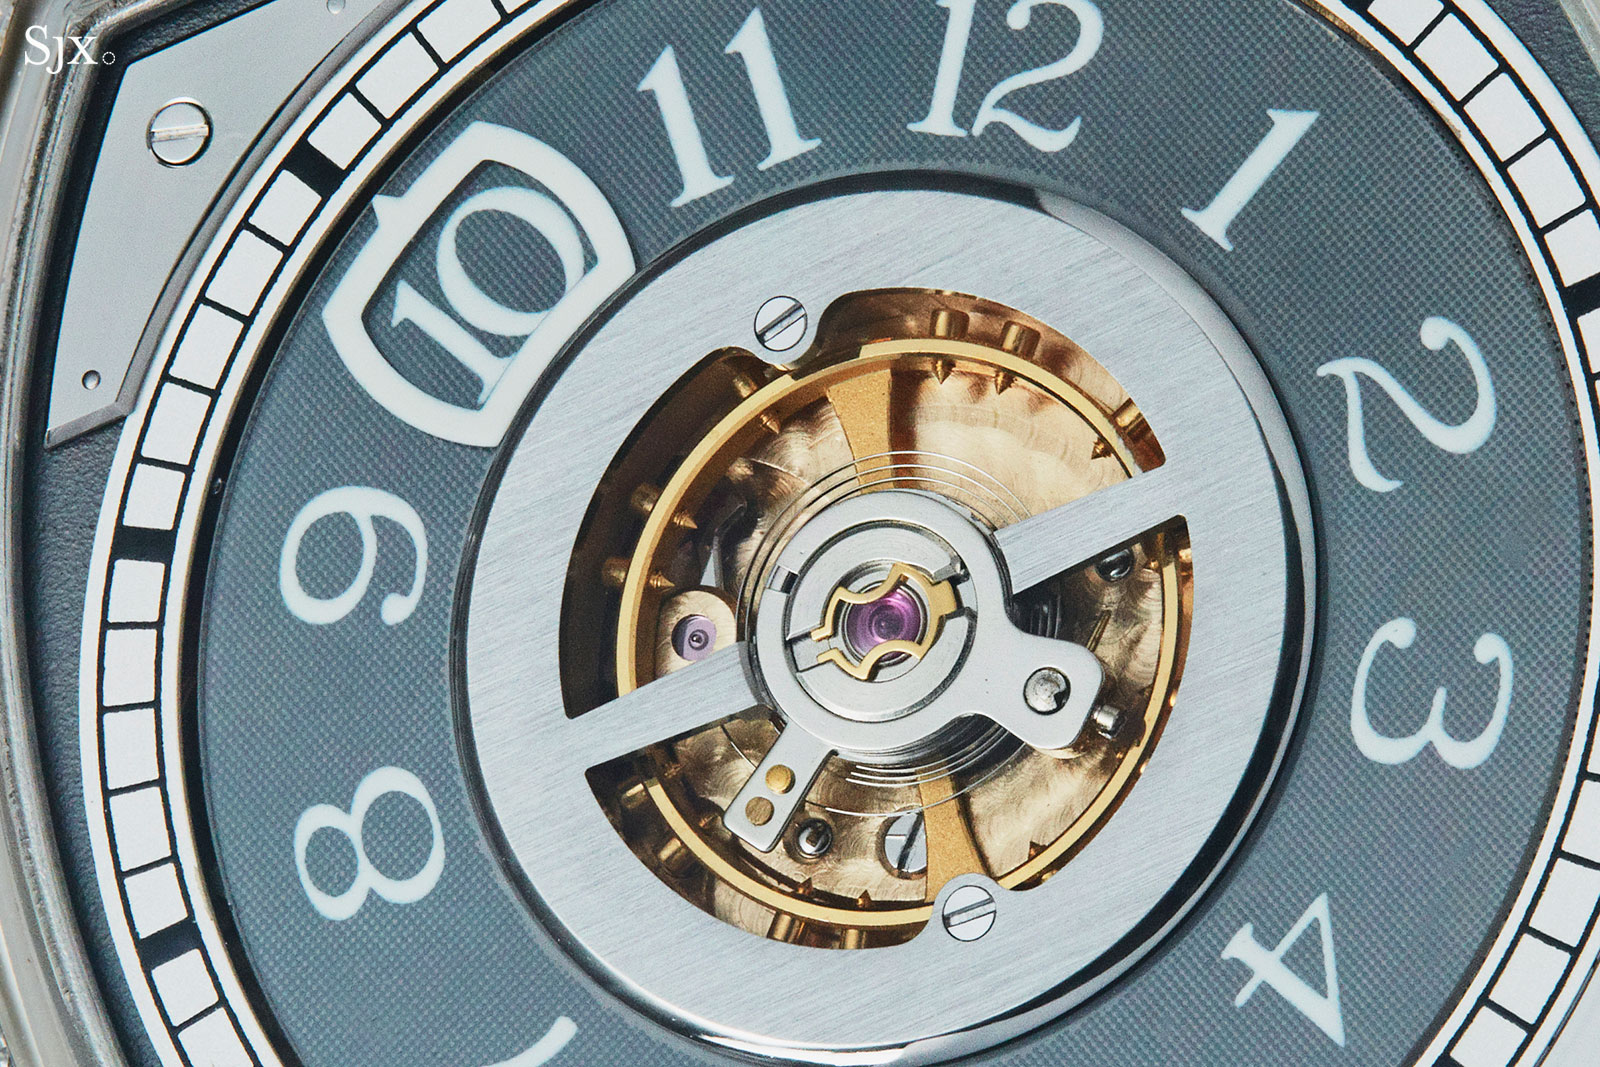 FP Journe Vagabondage I diamonds 5